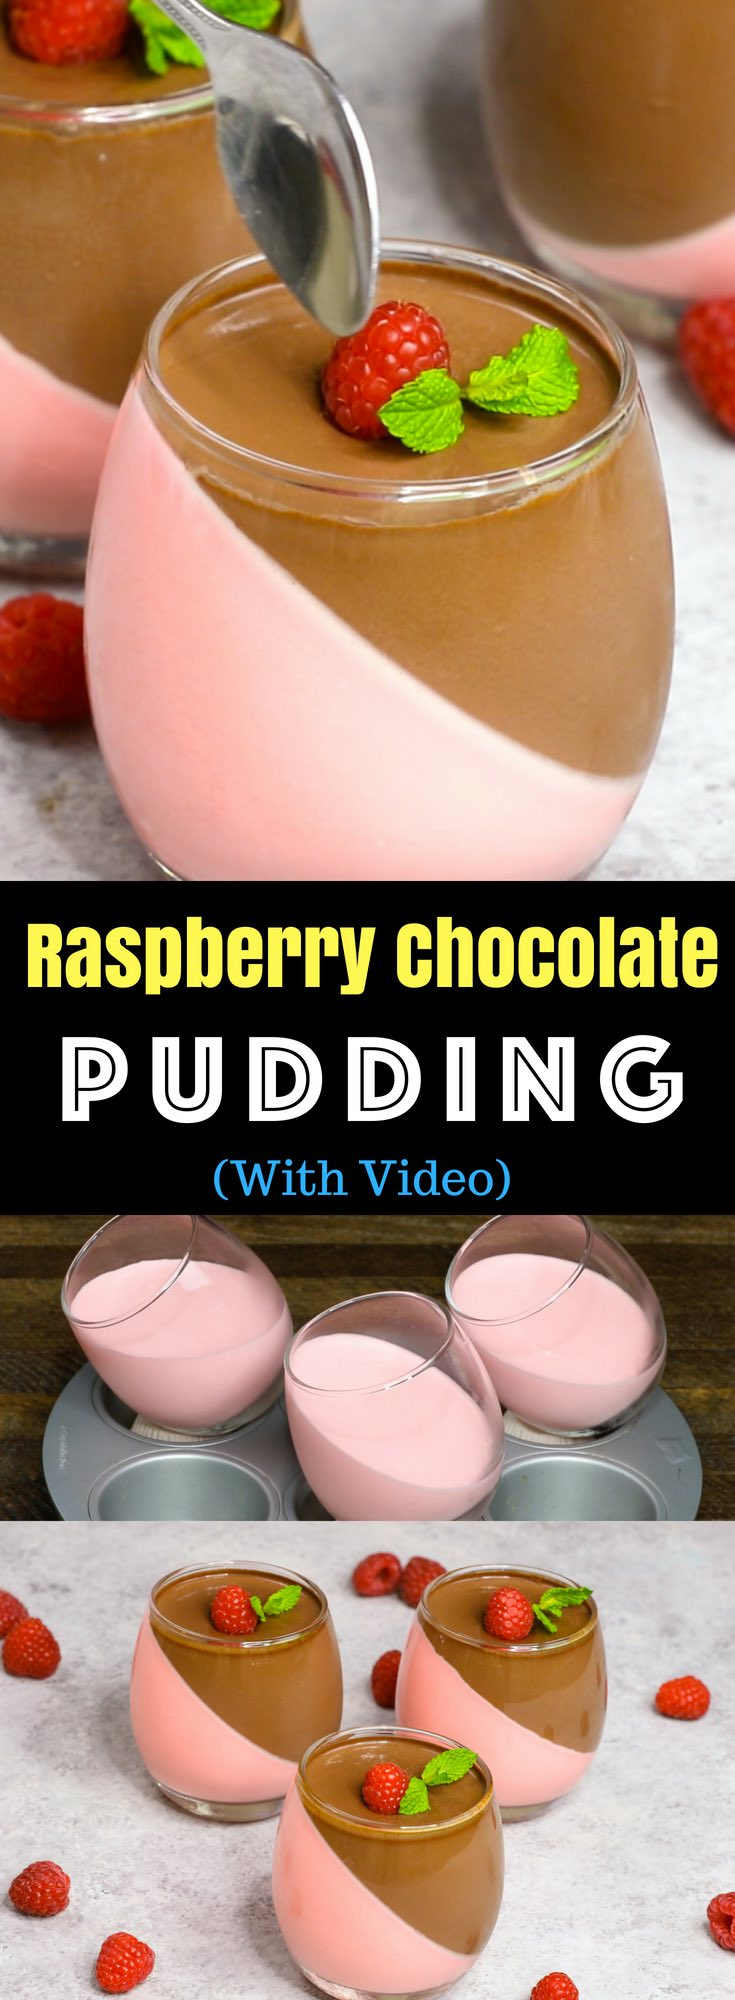 This Homemade Chocolate Pudding is a stunning make-ahead mouthwatering dessert that's creamy and smooth. It's an easy recipe with a few simple ingredients: raspberry jello powder, cool whip, half and half milk, gelatin, unsweet chocolate and sugar. Wow your guest with this refreshing dessert at your next party! No bake, and easy dessert. Video recipe. | izzycooking.com #ChocolatePudding